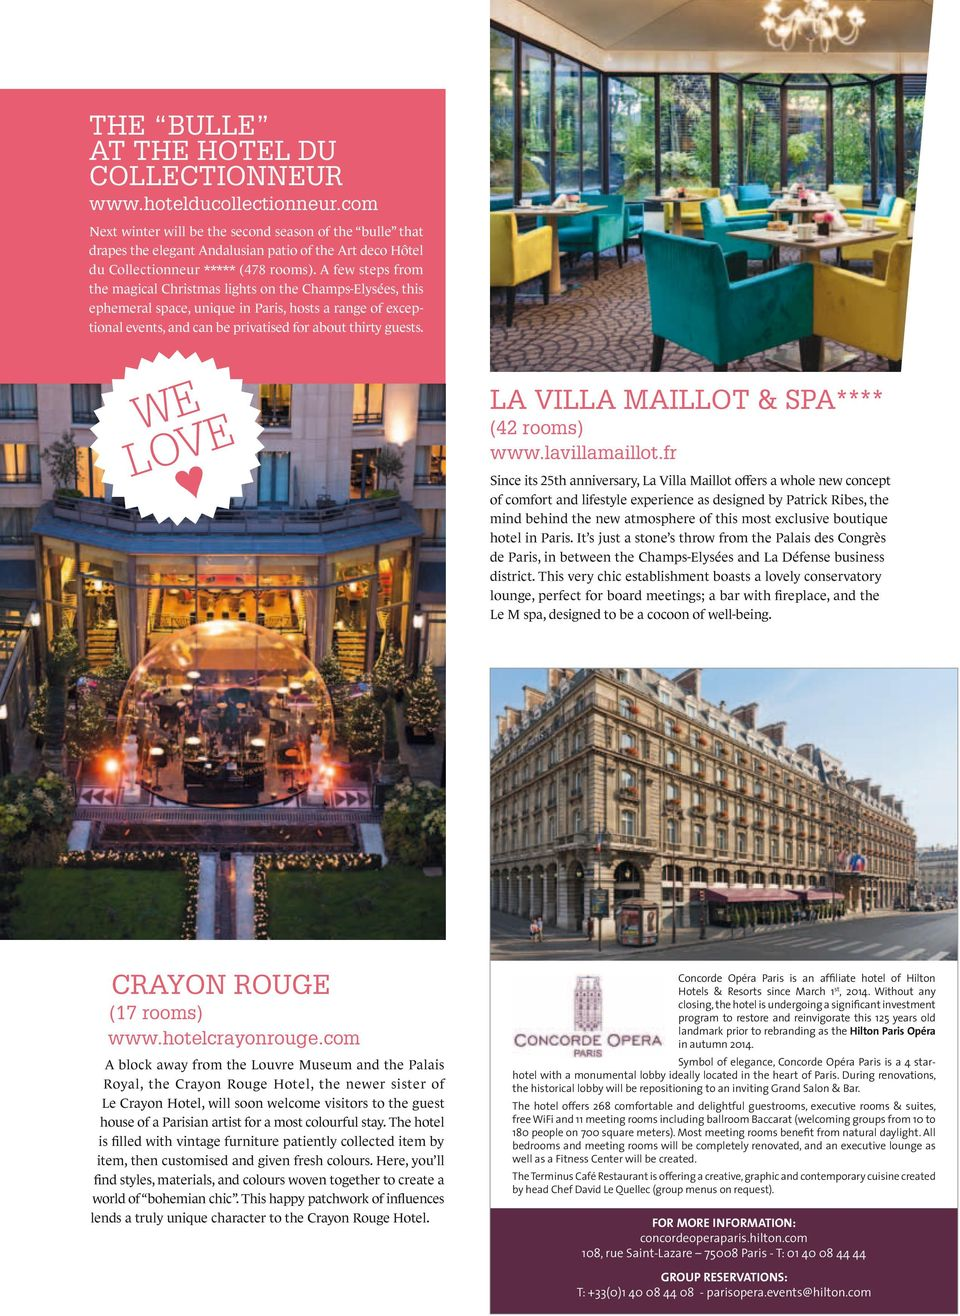 A few steps from the magical Christmas lights on the Champs-Elysées, this ephemeral space, unique in Paris, hosts a range of exceptional events, and can be privatised for about thirty guests.